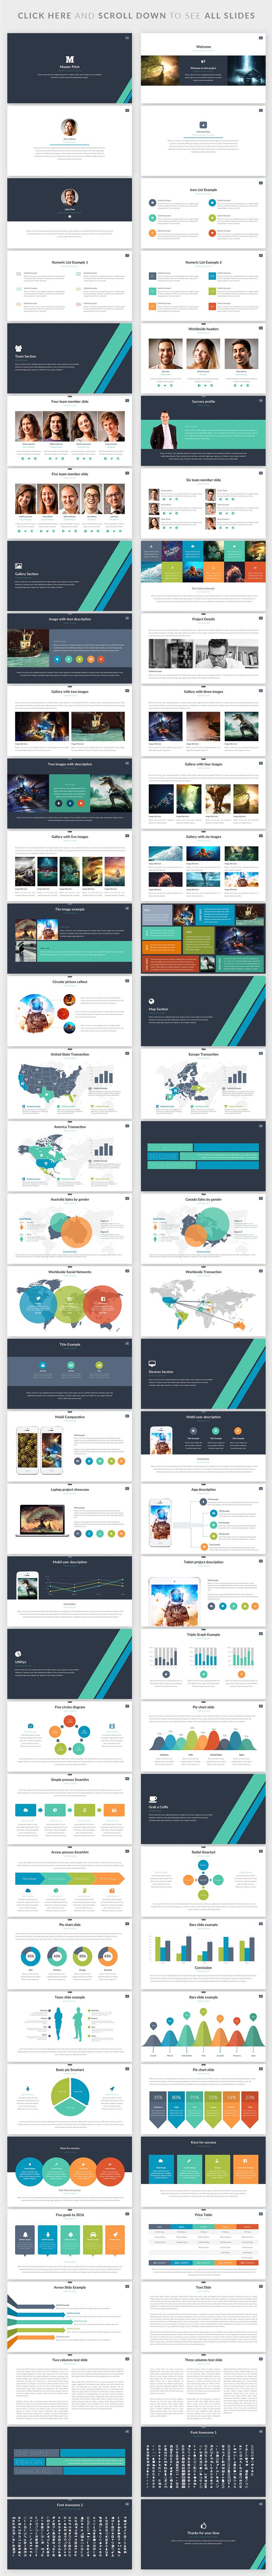 Master Pitch | Powerpoint Template by Zacomic Studios on @creativemarket